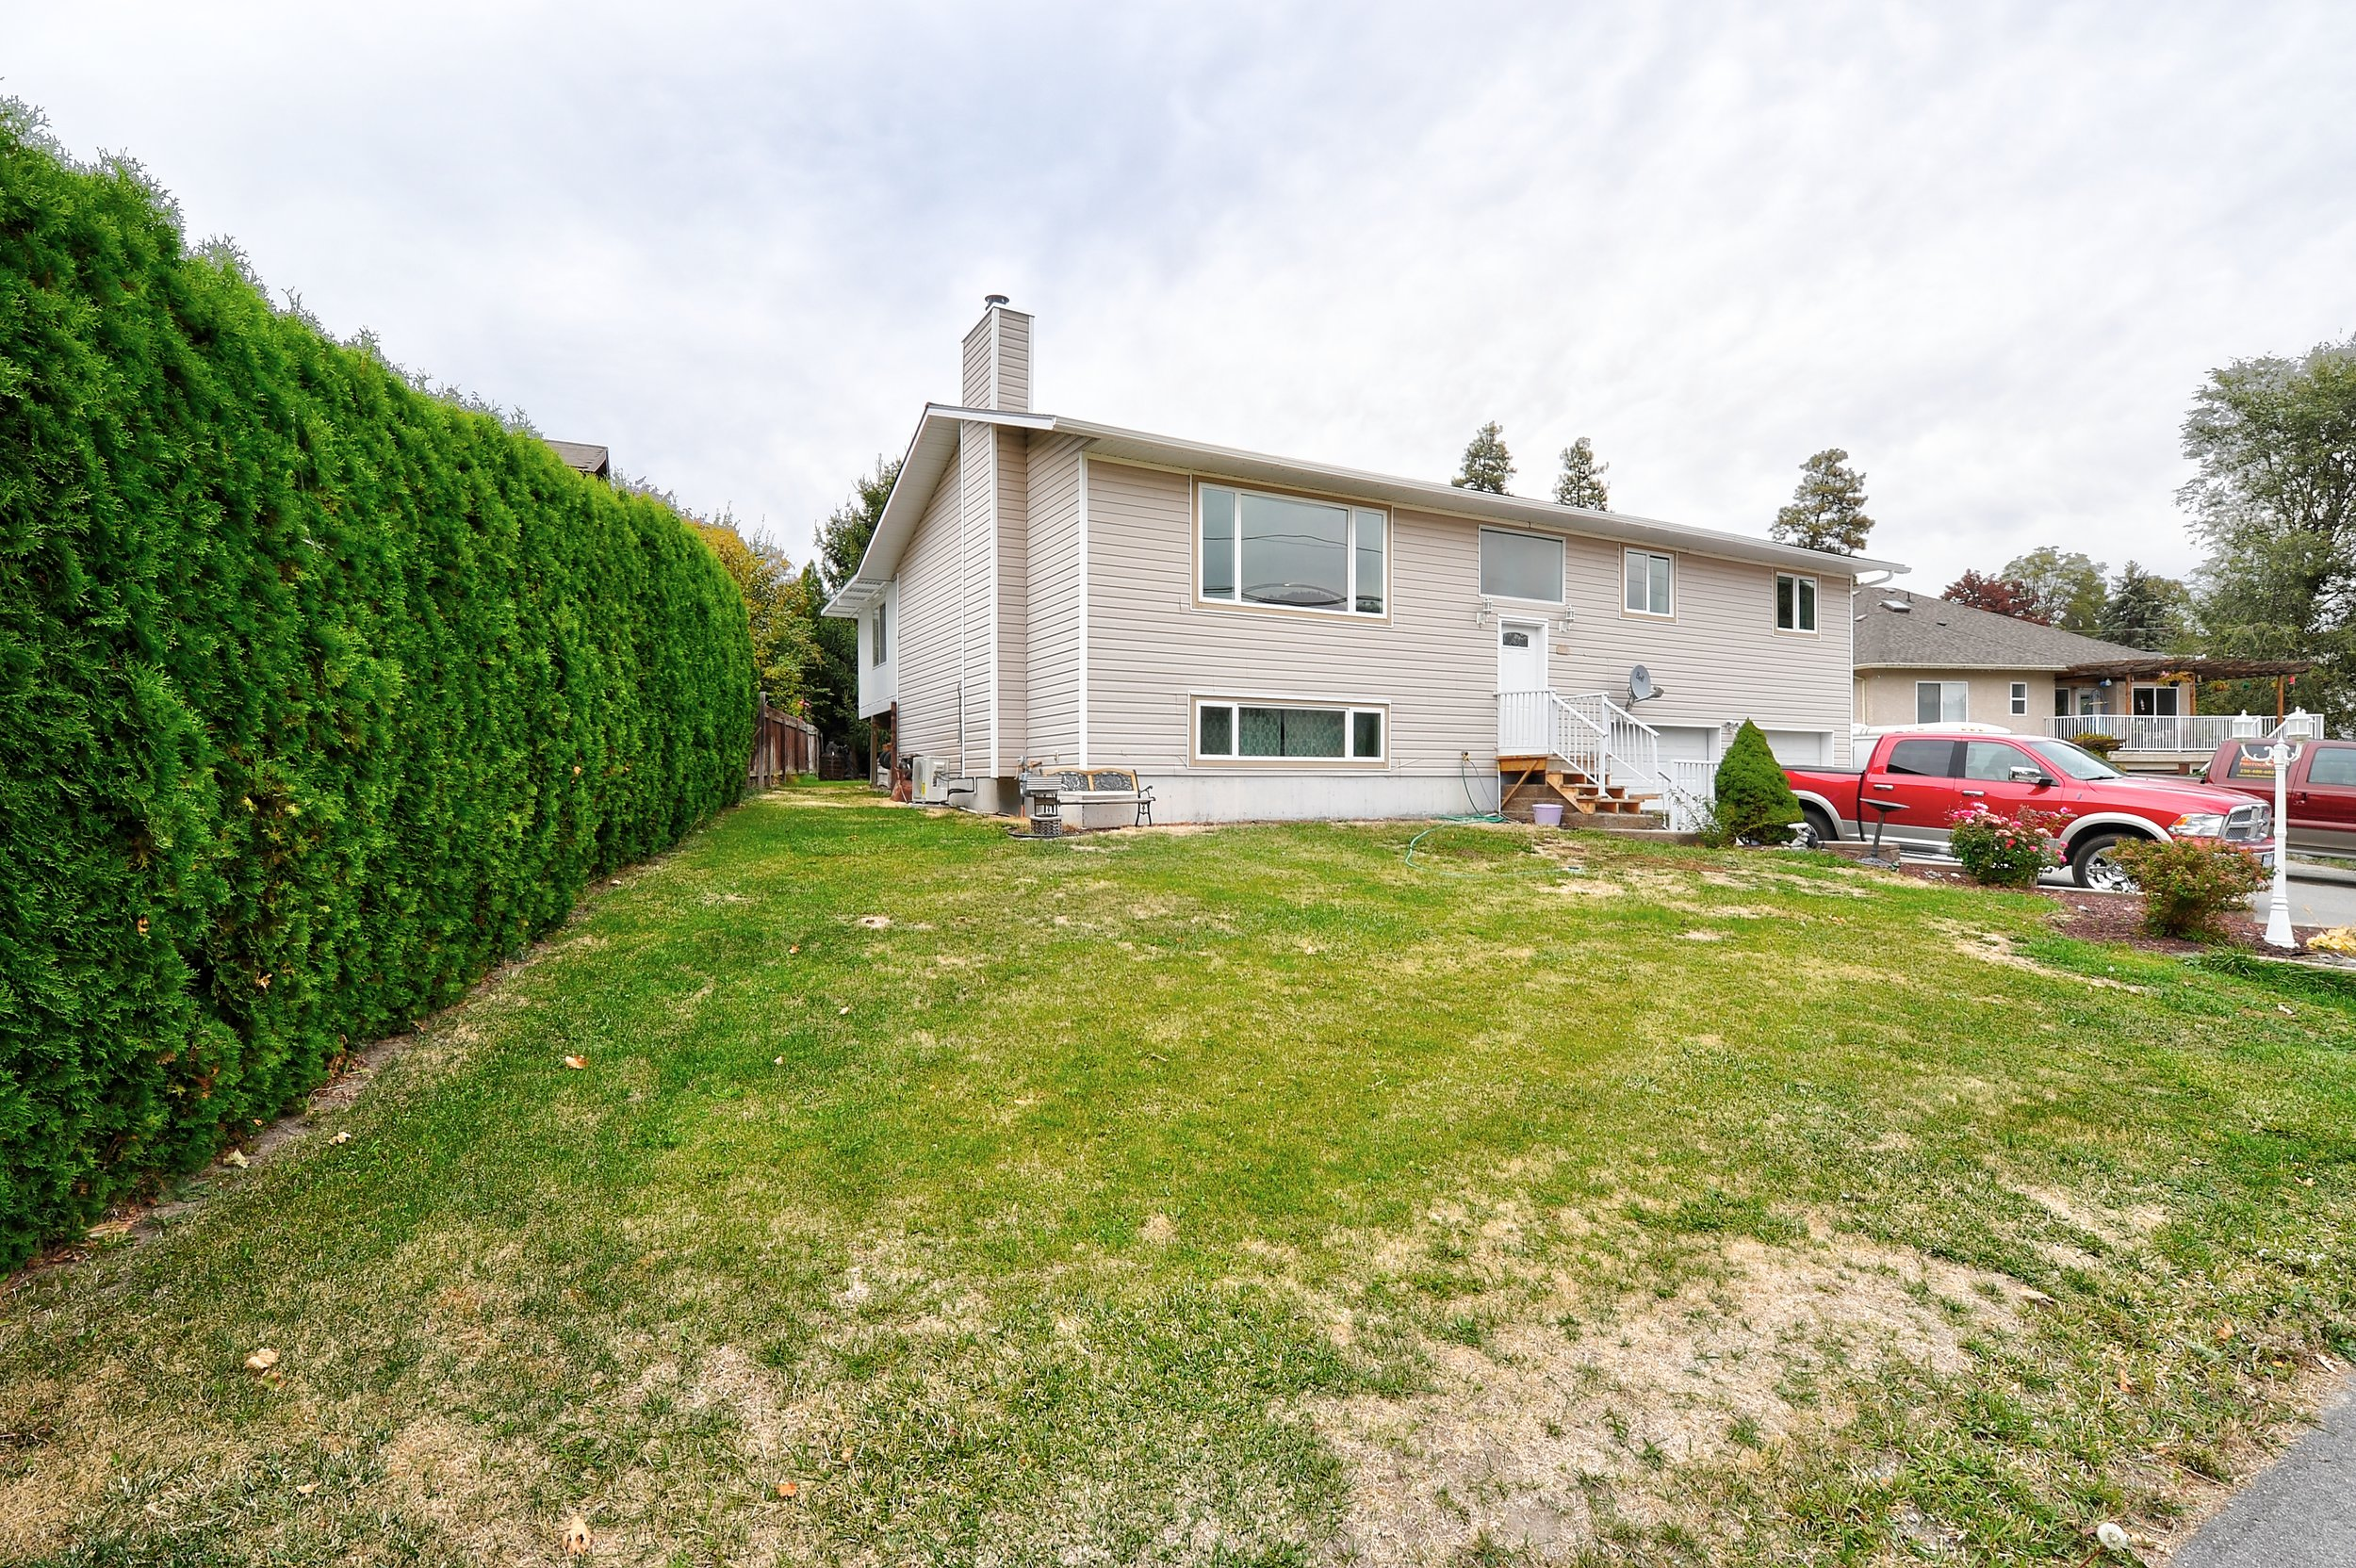 11722 Prairie Valley Road | Summerland, BC | MLS 171203 | $ 577,000 List | SOLD | April 2018